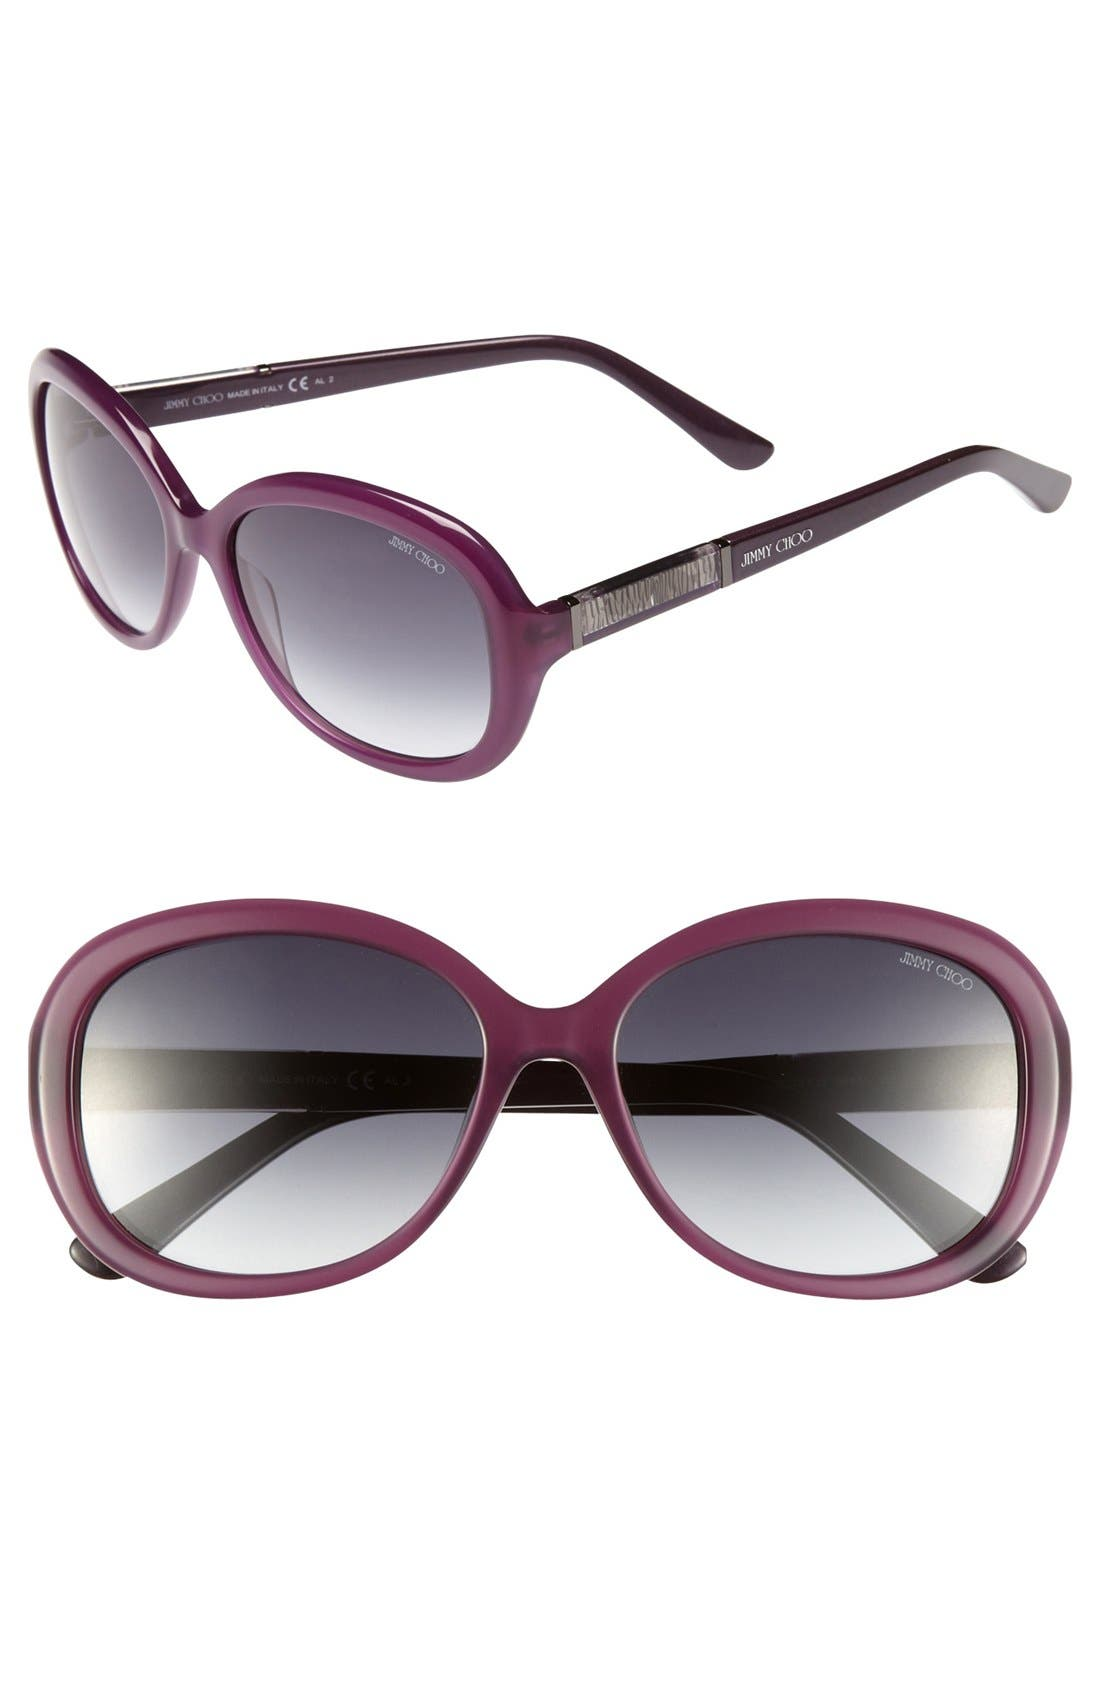 Main Image - Jimmy Choo 'Monique' 56mm Classic Sunglasses